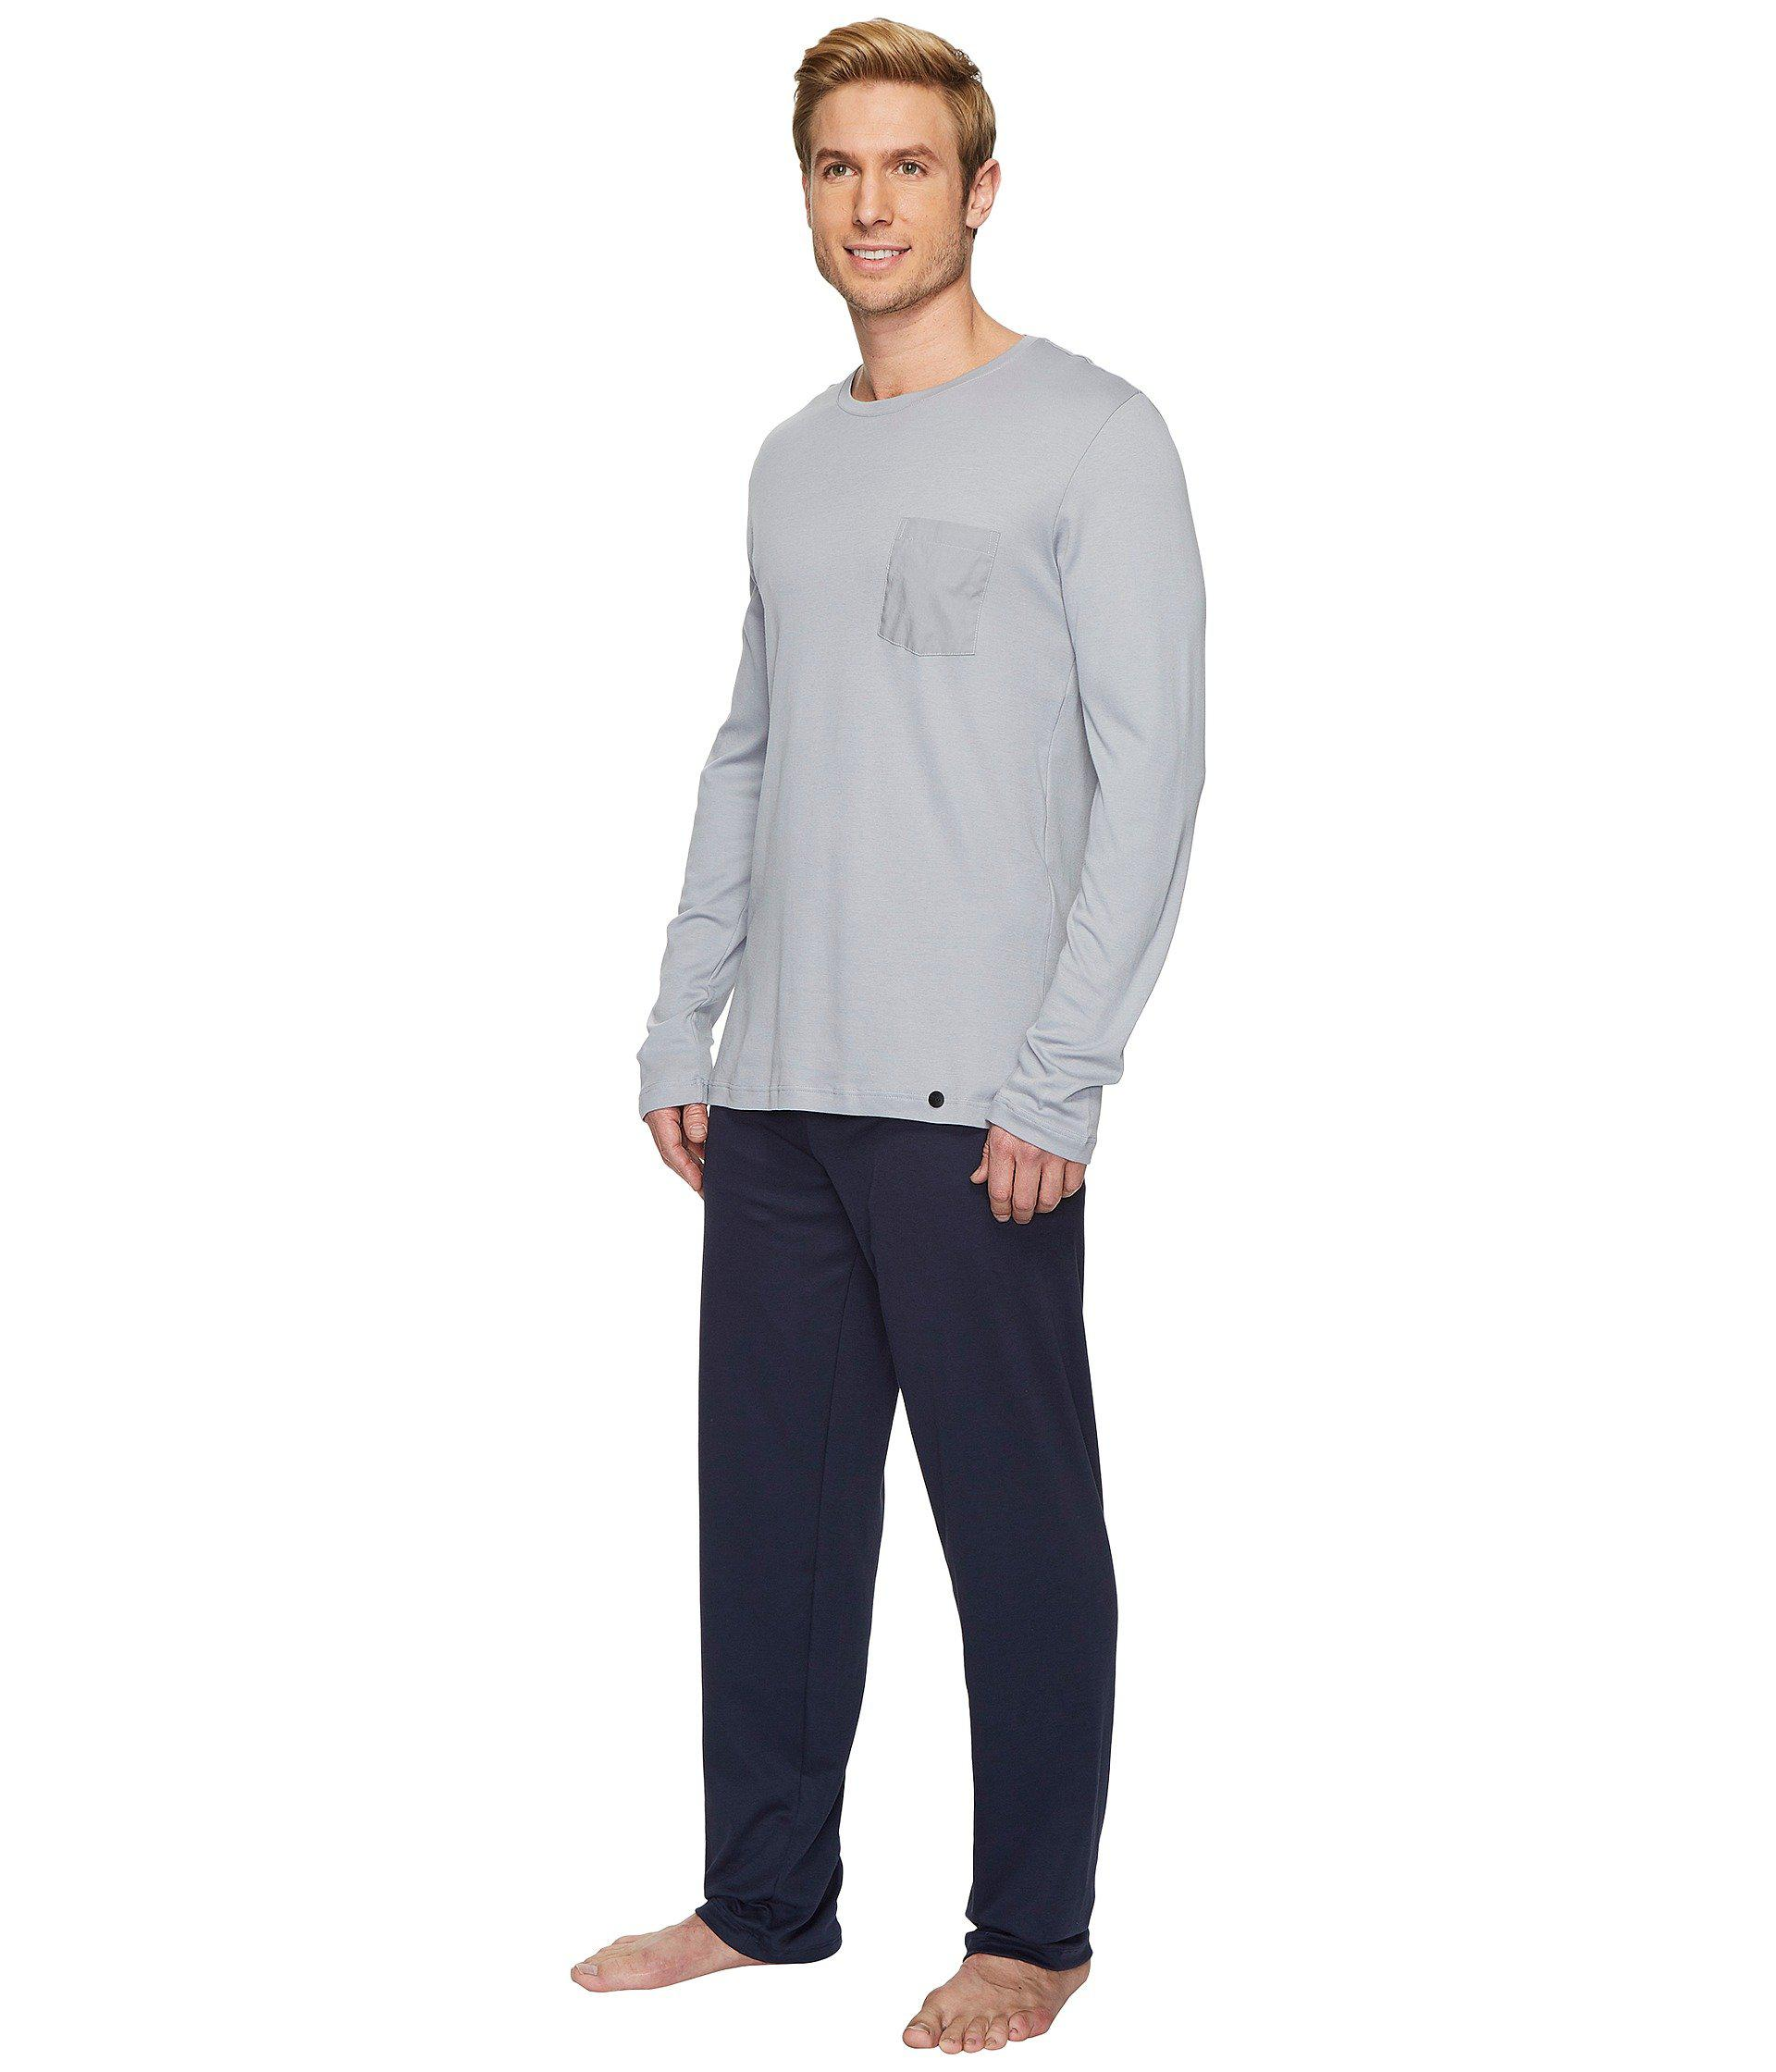 61dc48cbd5 Lyst - Hanro Night And Day Long Sleeve Pajama Set (mineral) Men s Pajama  Sets in Blue for Men